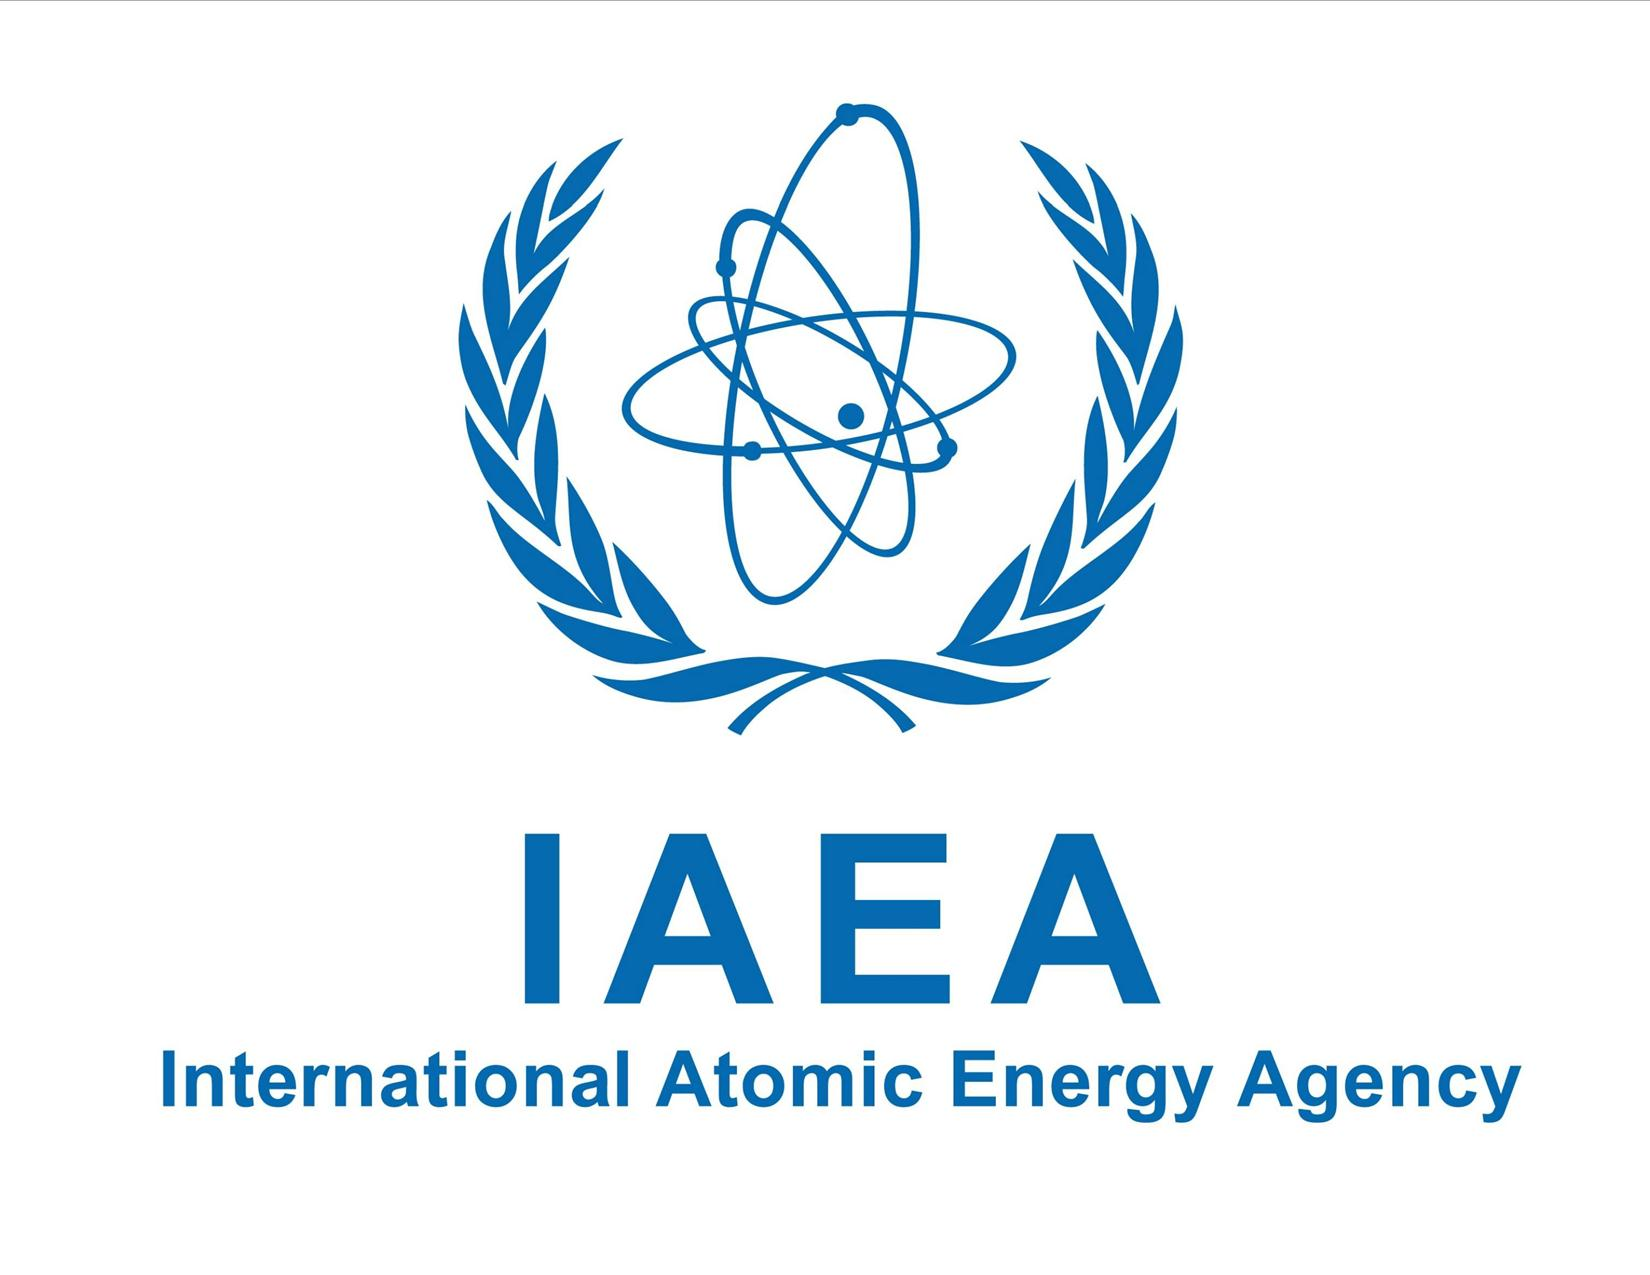 International Atomic Energy Agency of the United Nations